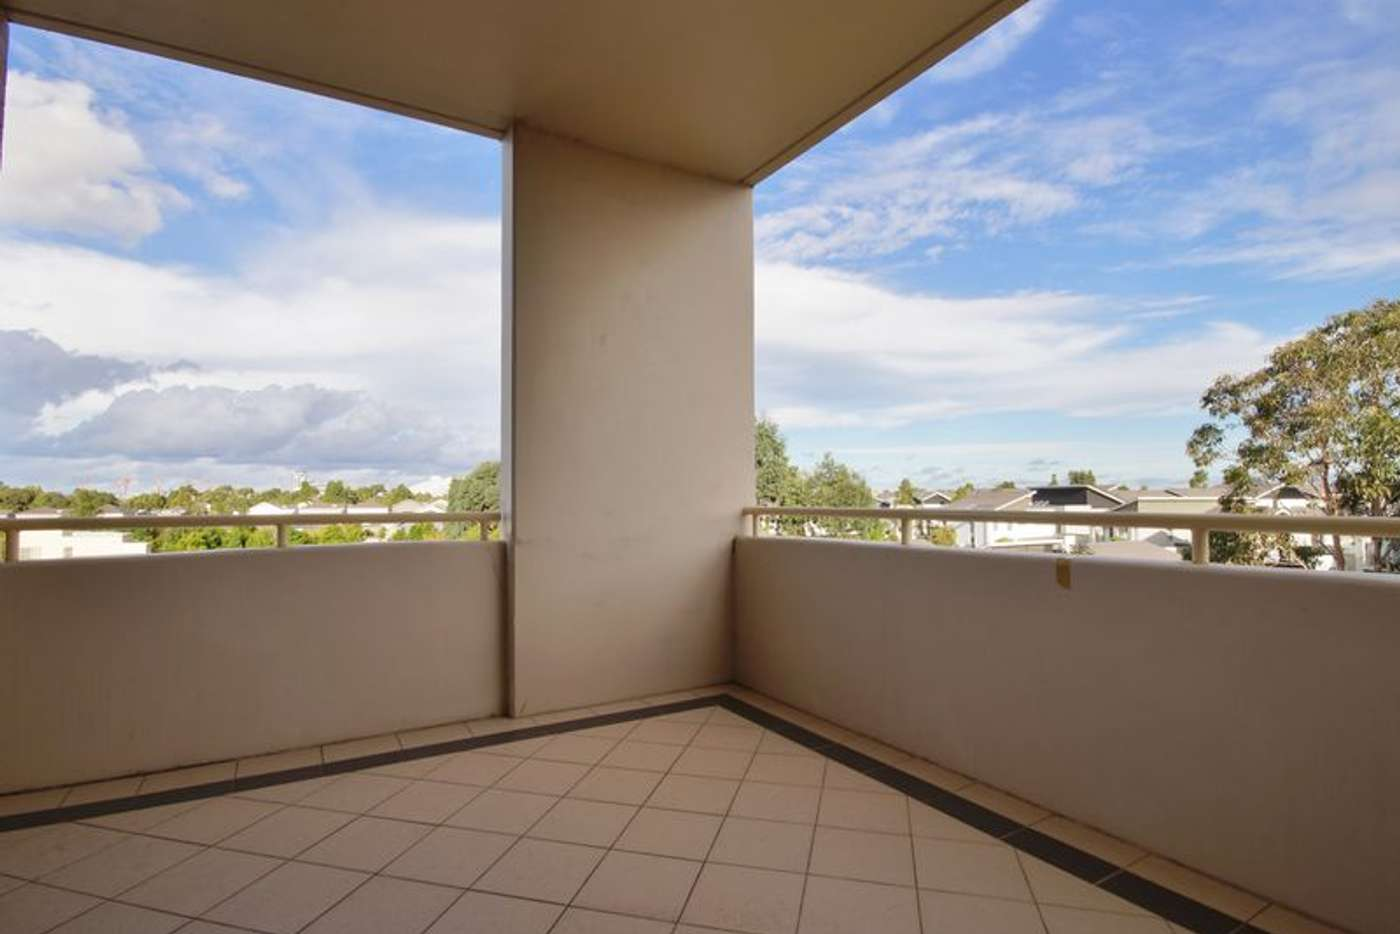 Seventh view of Homely apartment listing, 123/3 Carnarvon St, Silverwater NSW 2128